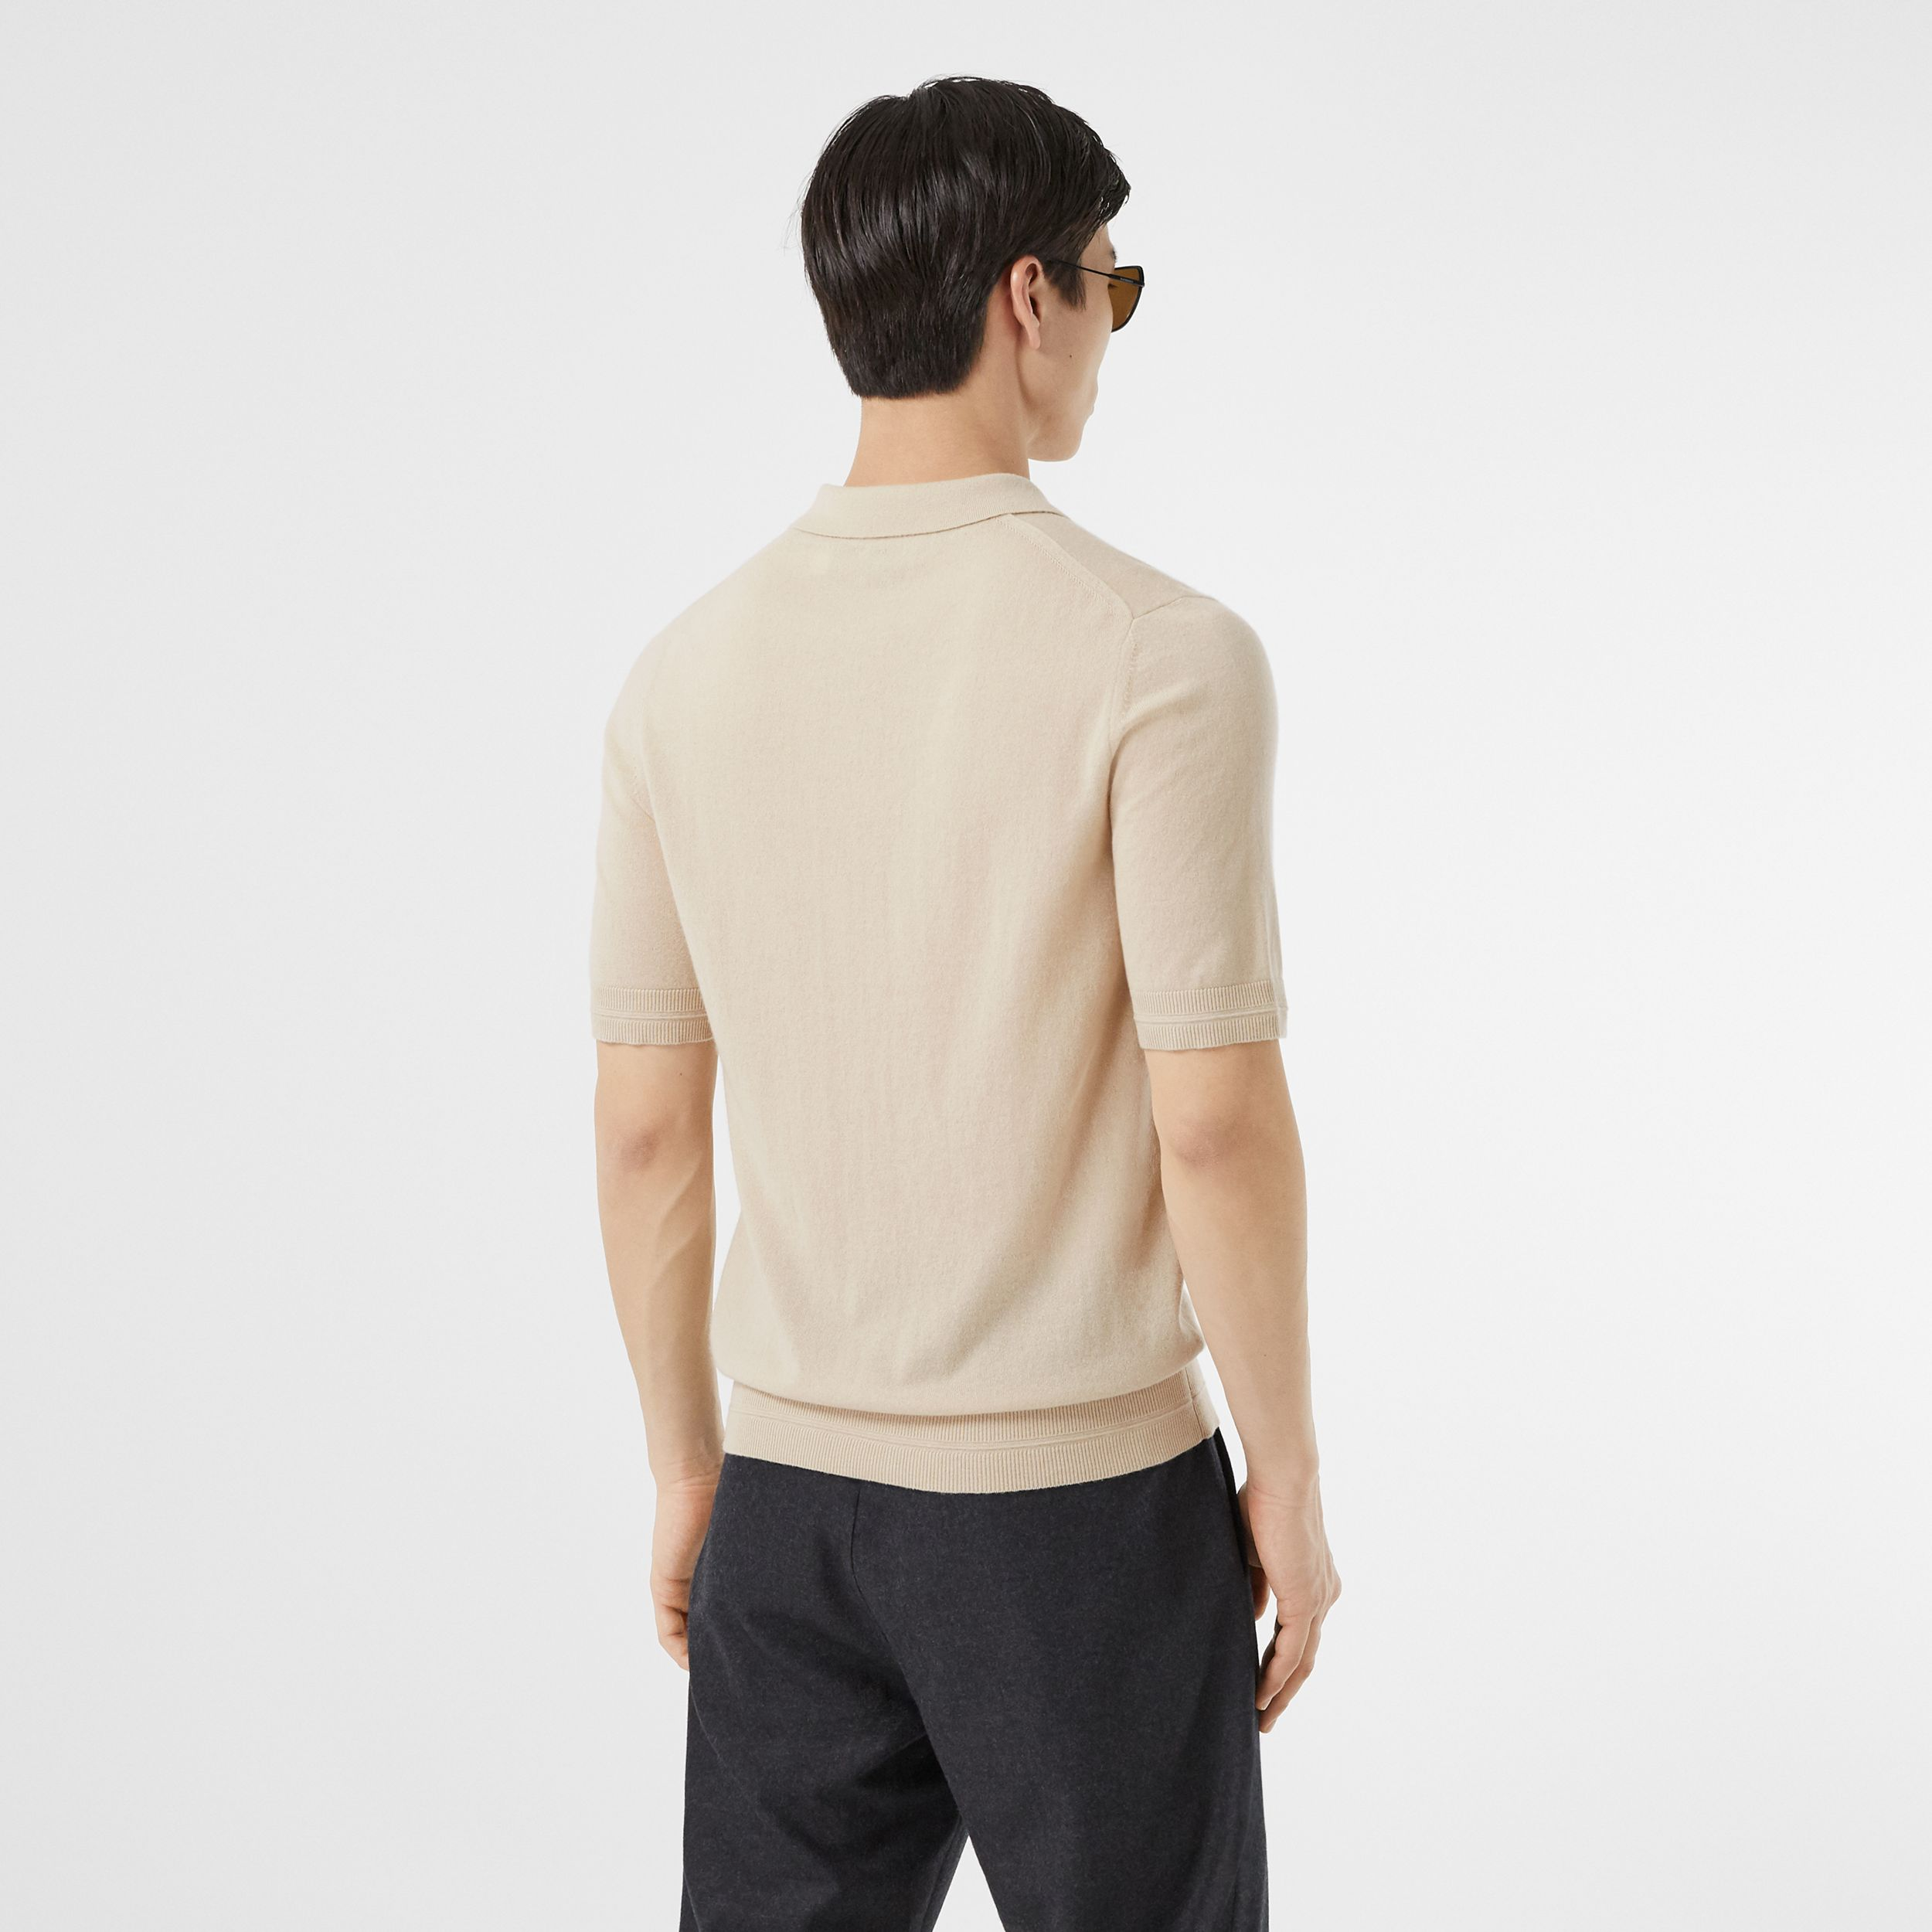 Monogram Motif Cashmere Polo Shirt in Soft Fawn - Men | Burberry United Kingdom - 3